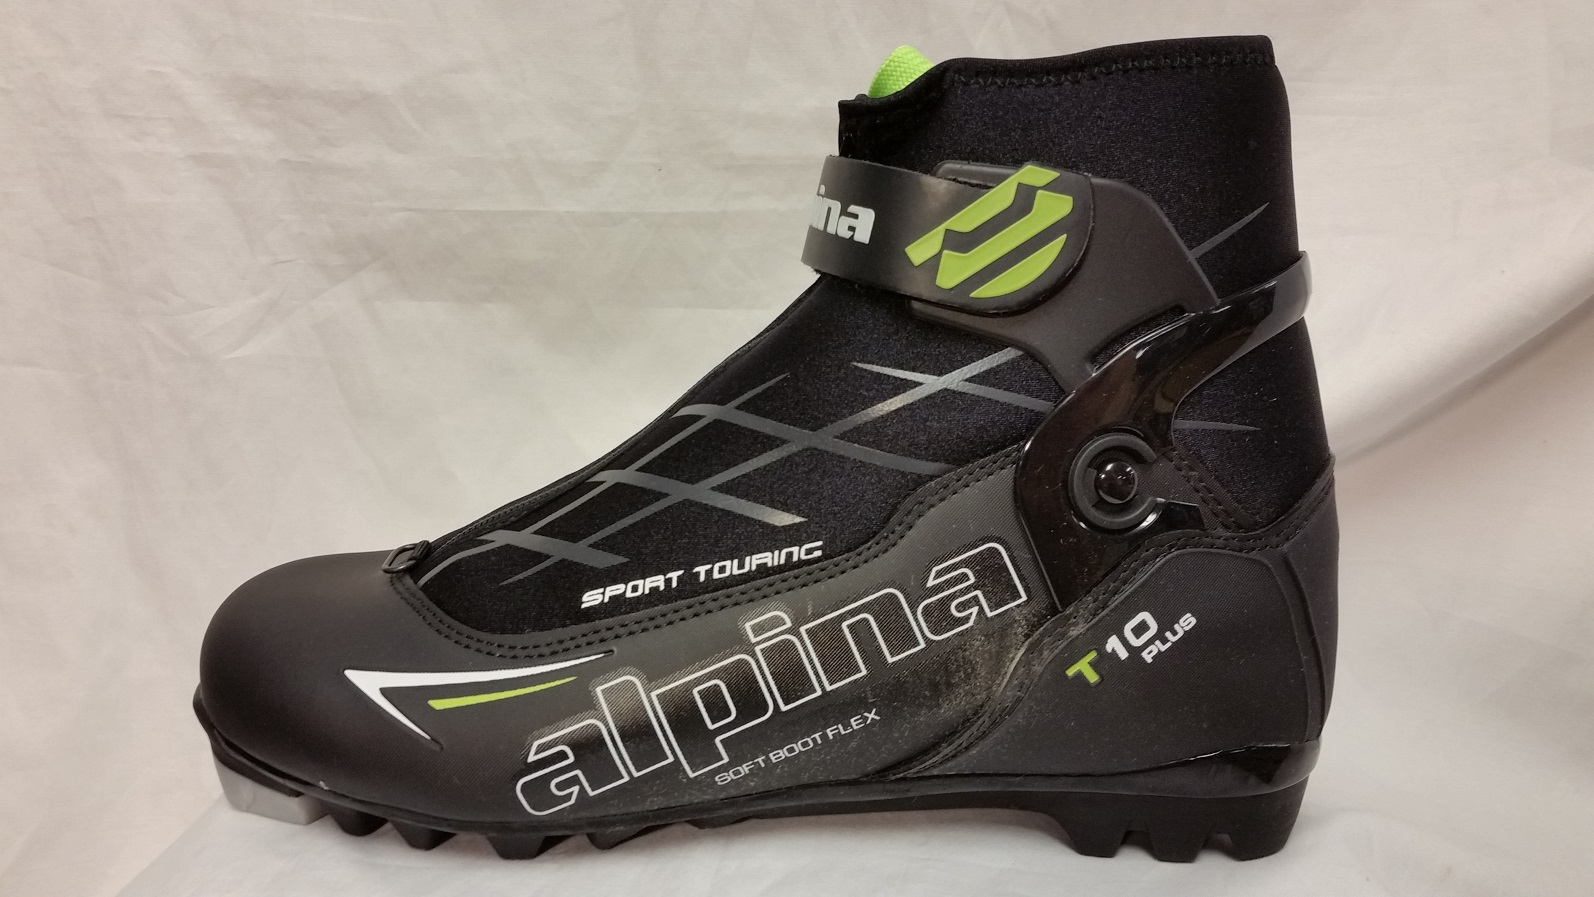 Alpina T Plus Nordic Ski Boots NNN CLOSEOUT Moab Gear Trader - Alpina backcountry ski boots